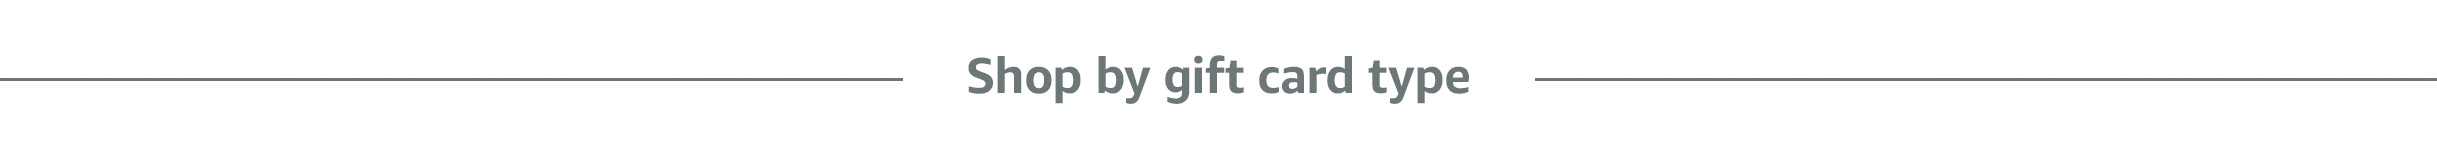 Shop by gift card type